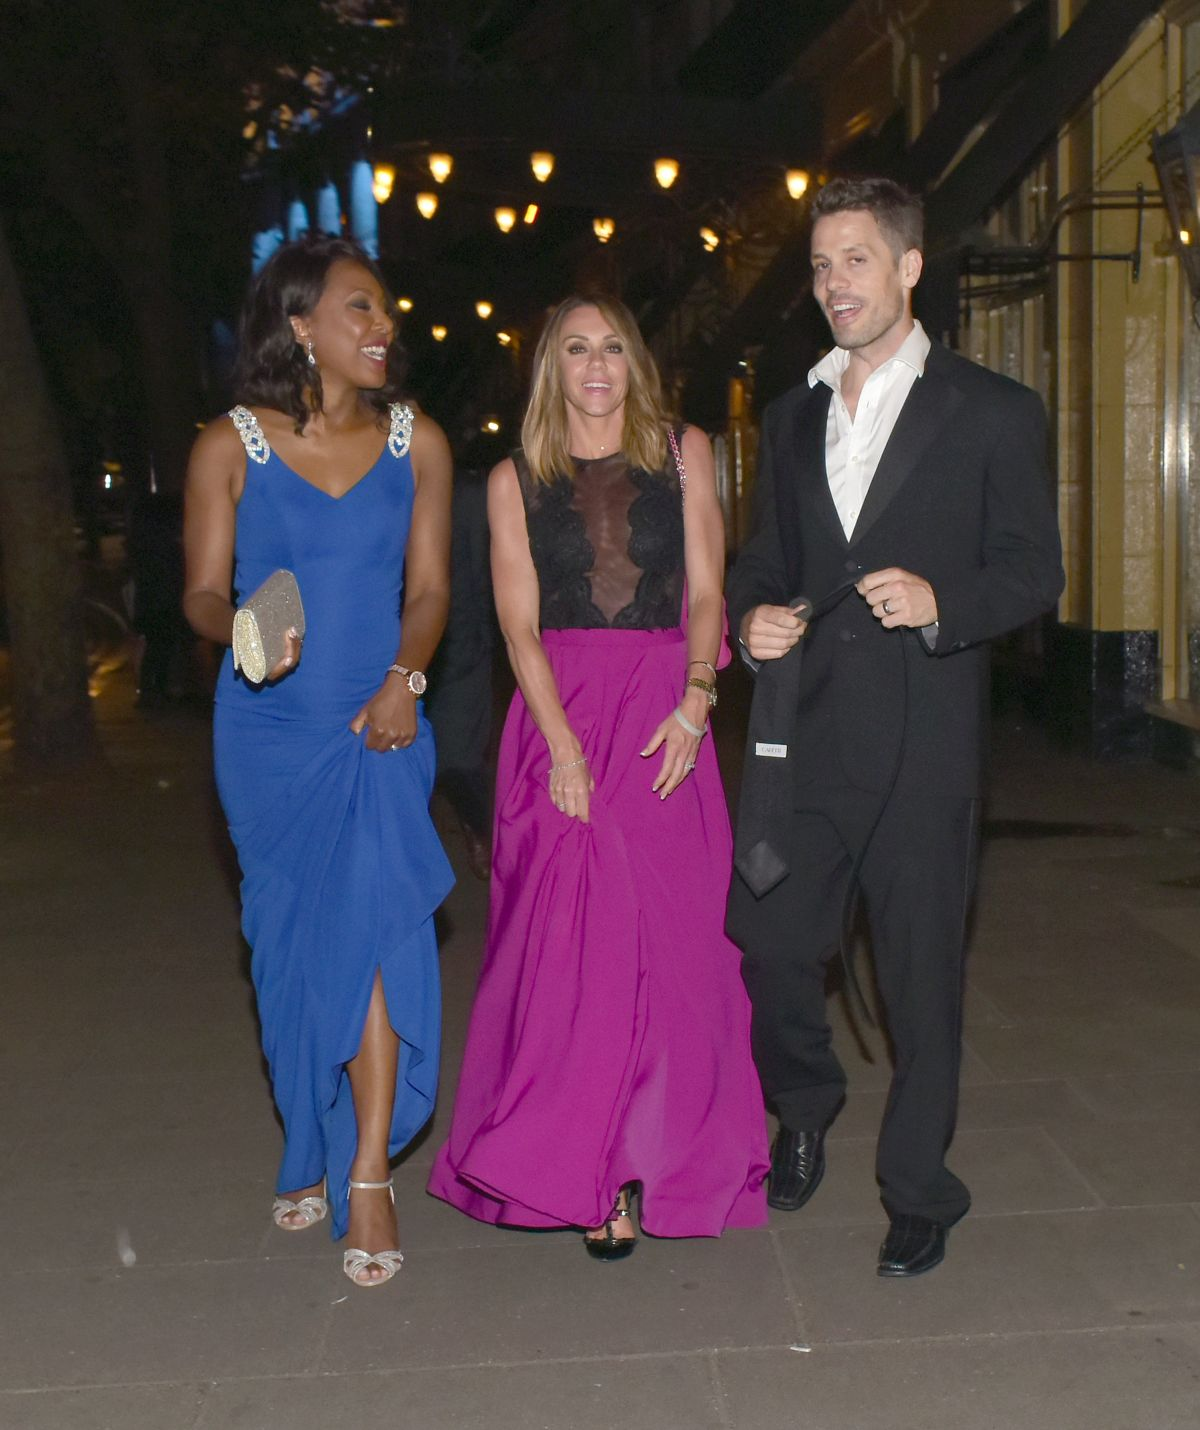 MICHELLE HEATON and KELLI YOUNG Leaves Waldorf Charity Ball in London 06/09/2016